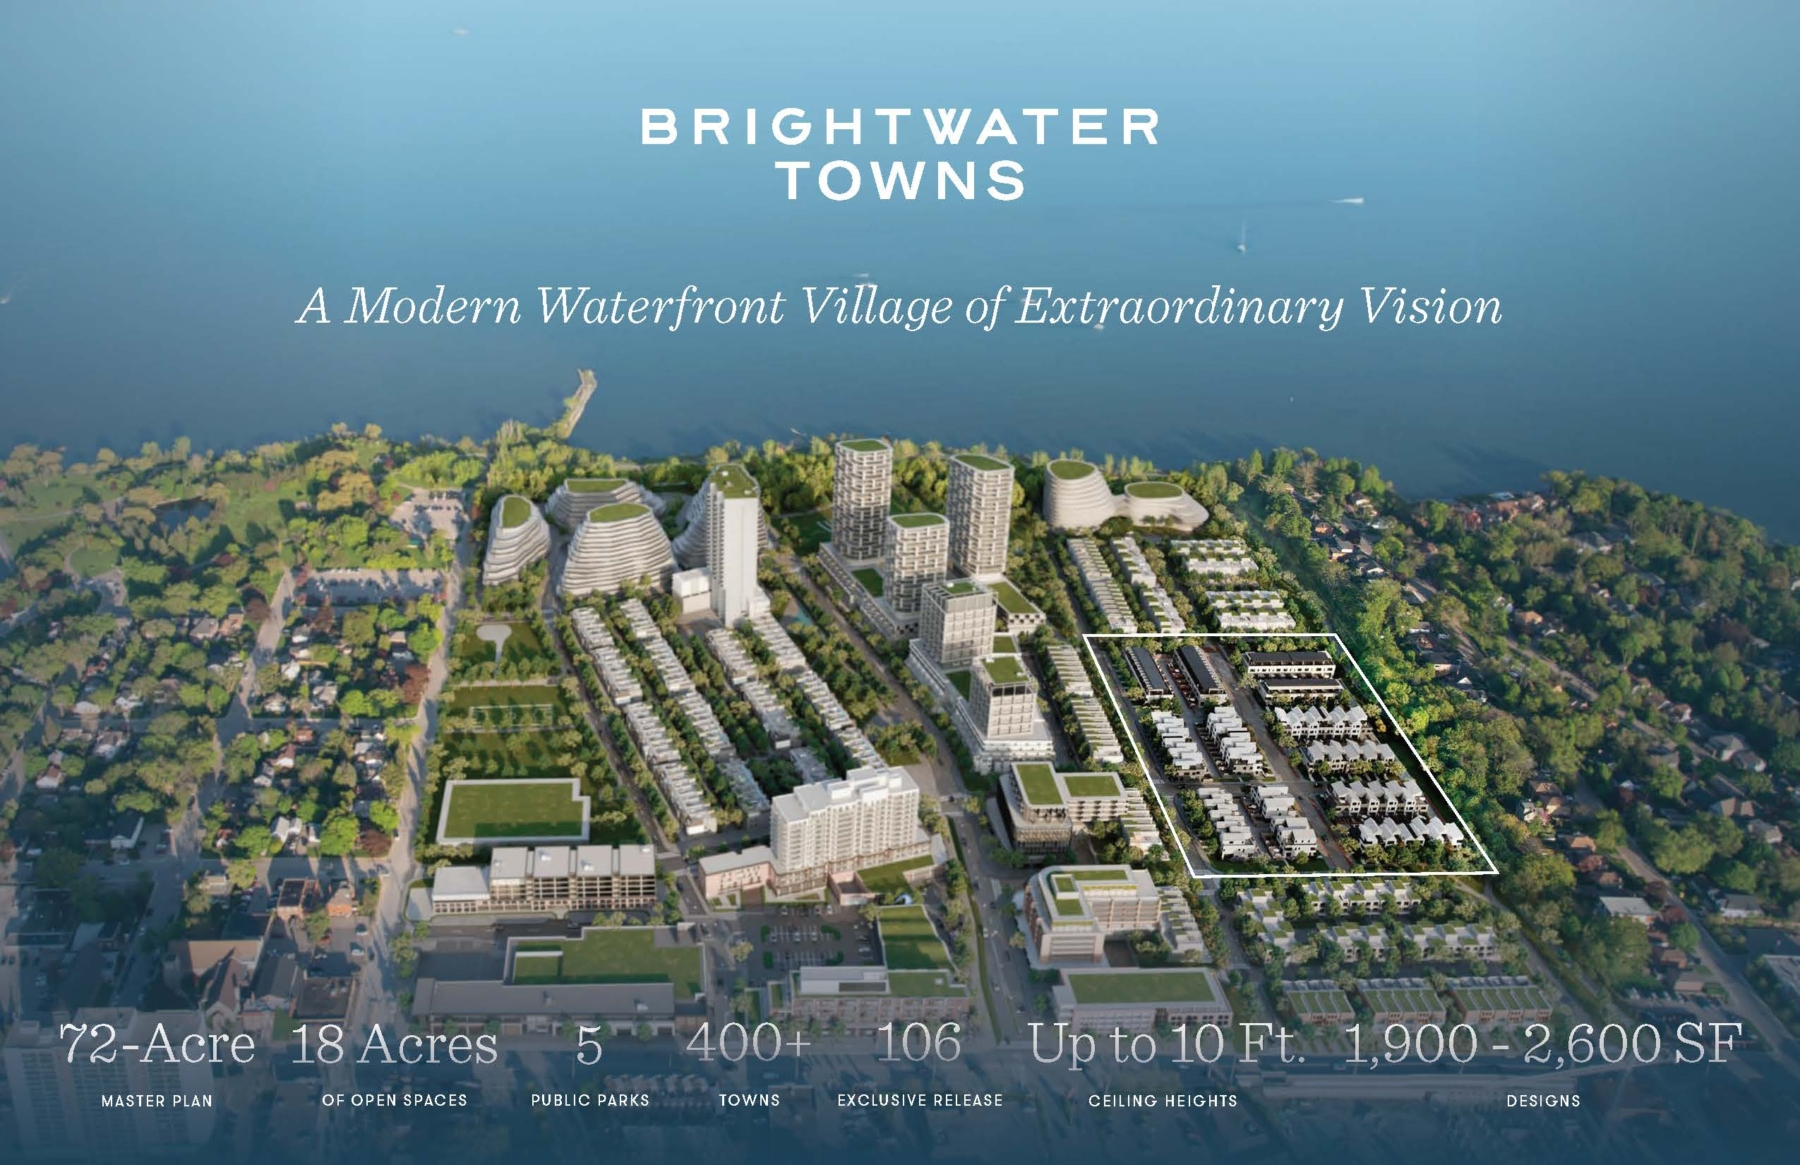 Brightwater Towns project information